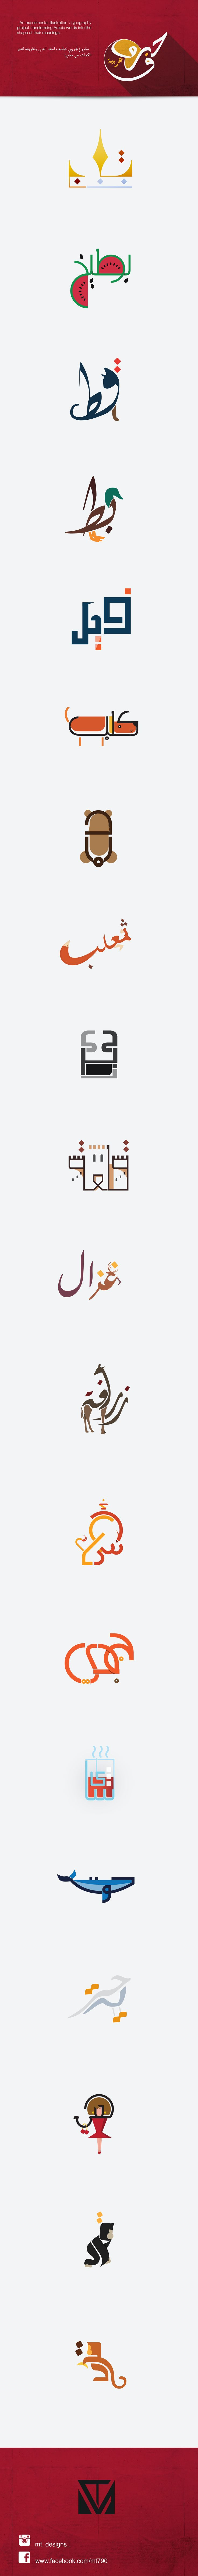 An experimental illustration  typography project transforming Arabic words into the shape of their meanings. https://www.behance.net/gallery/33828638/-Arabic-Letters